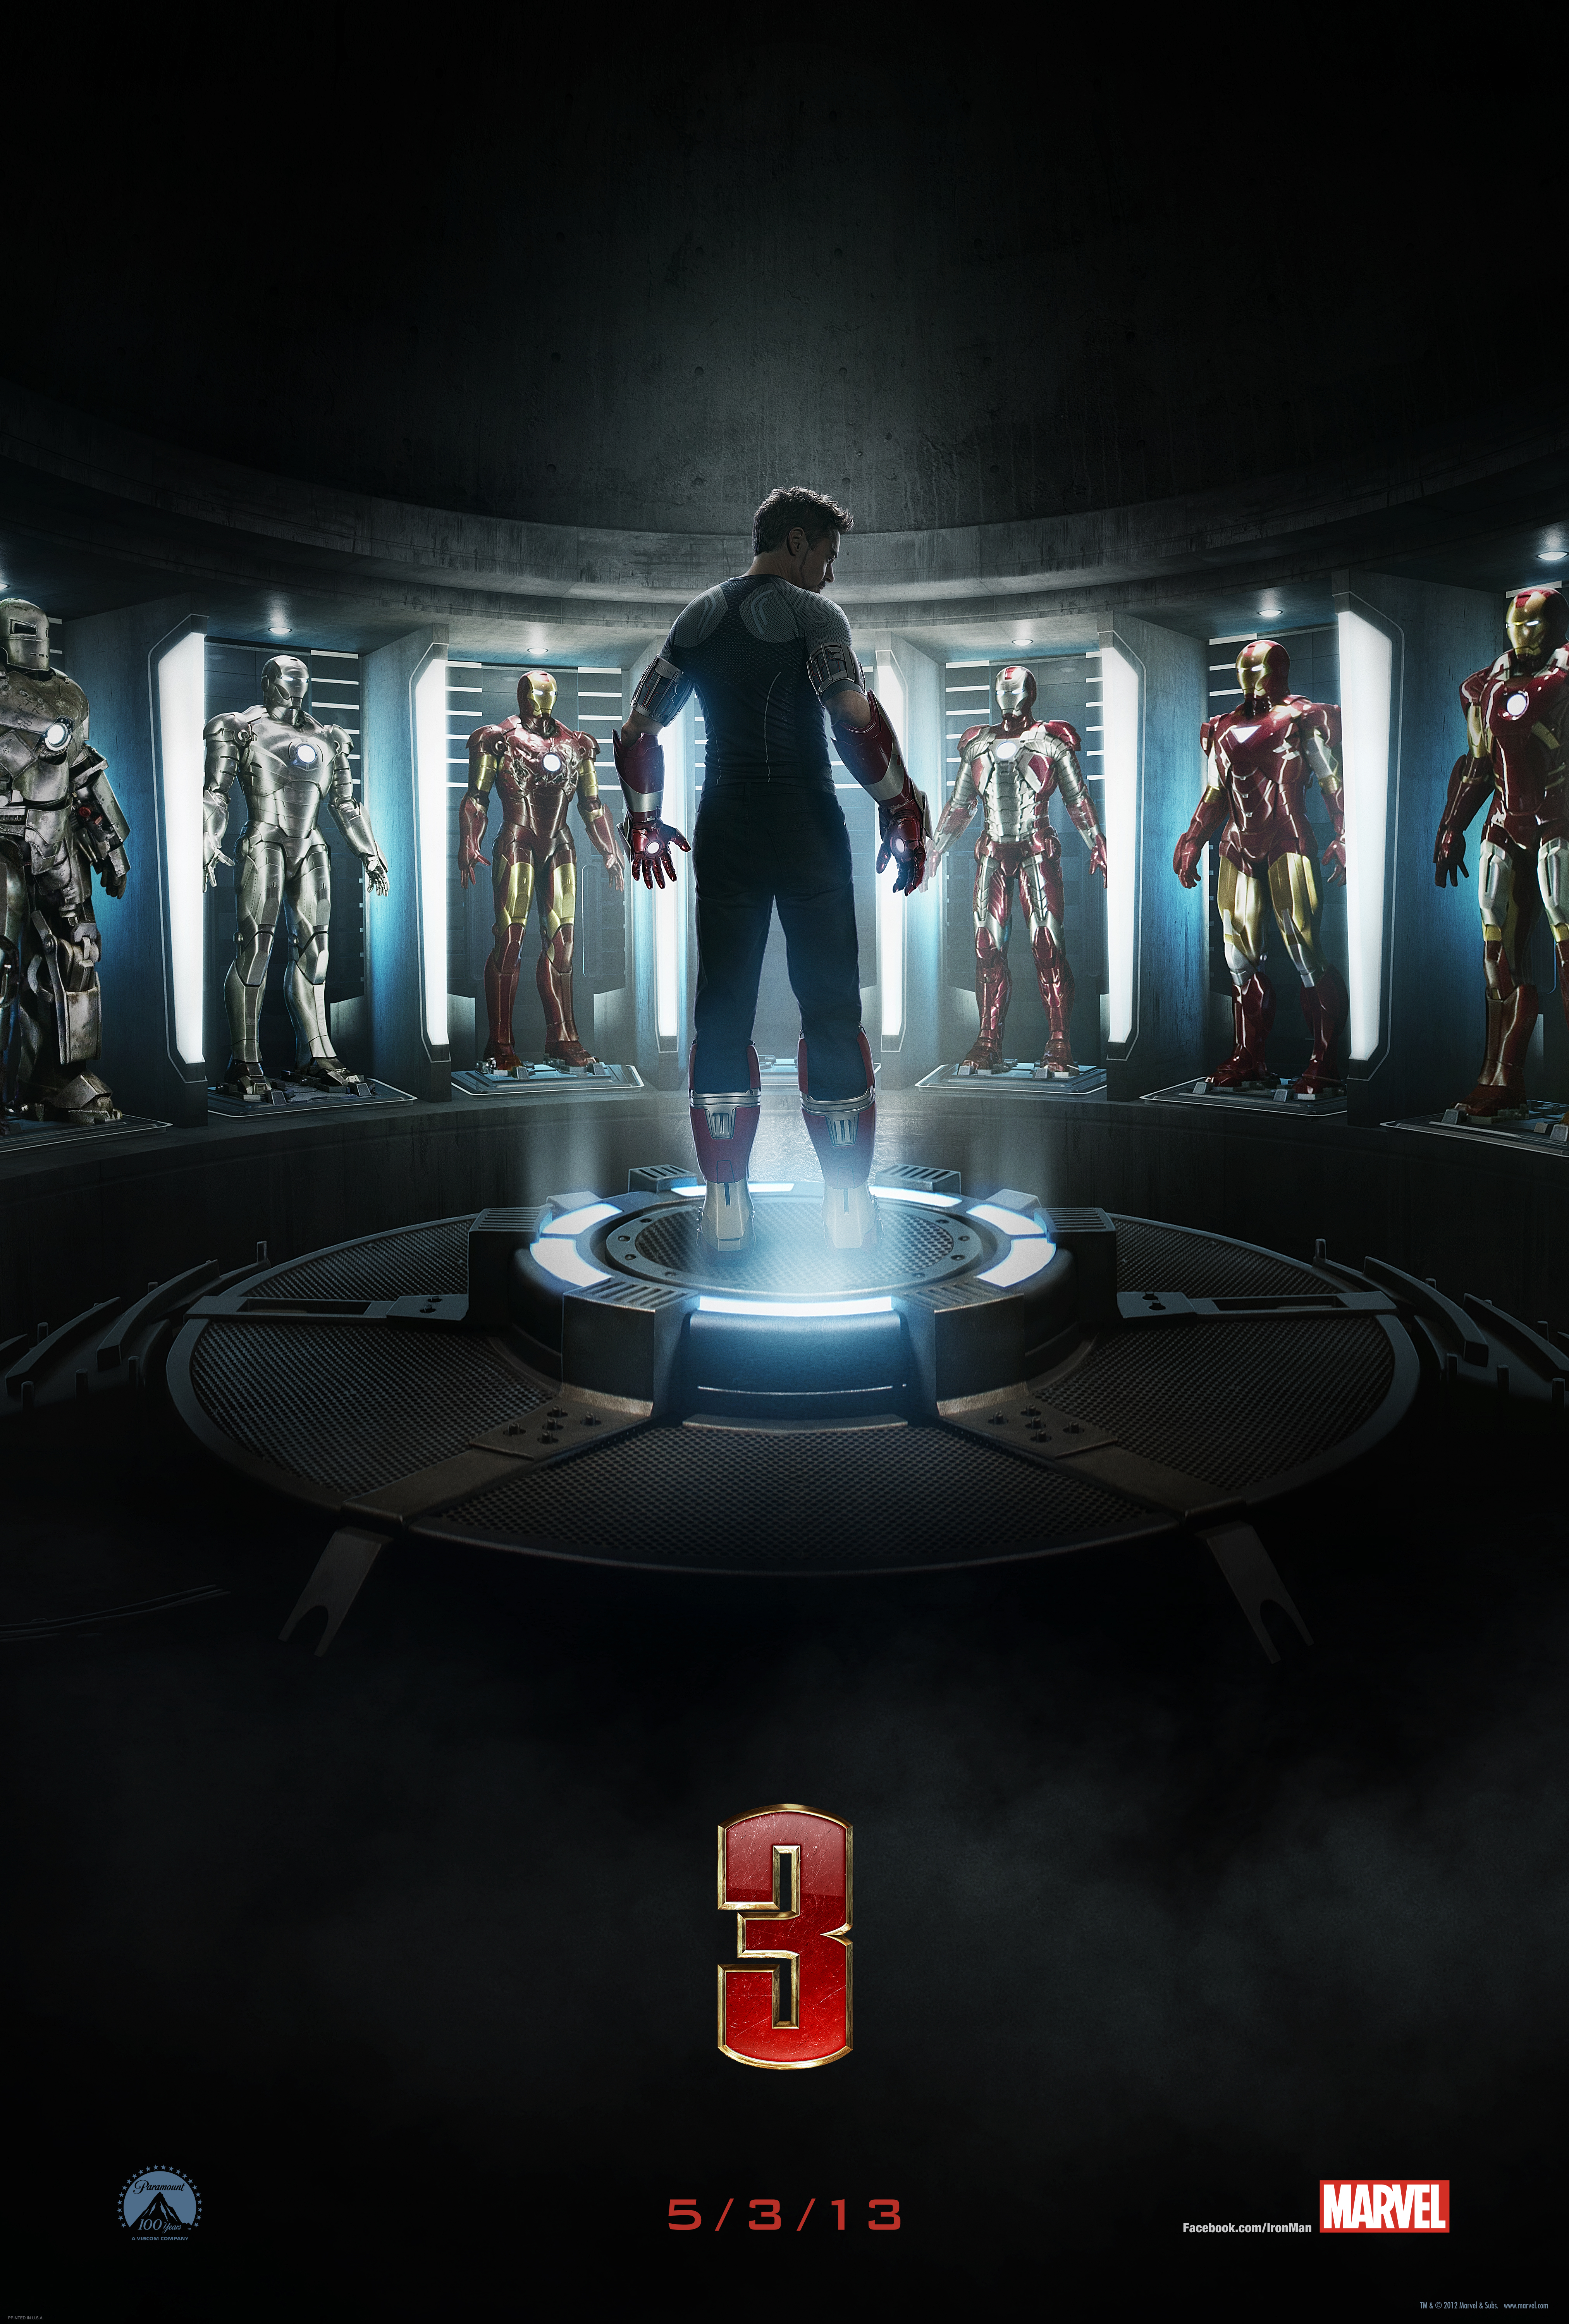 'Iron Man 3' teaser trailer and poster